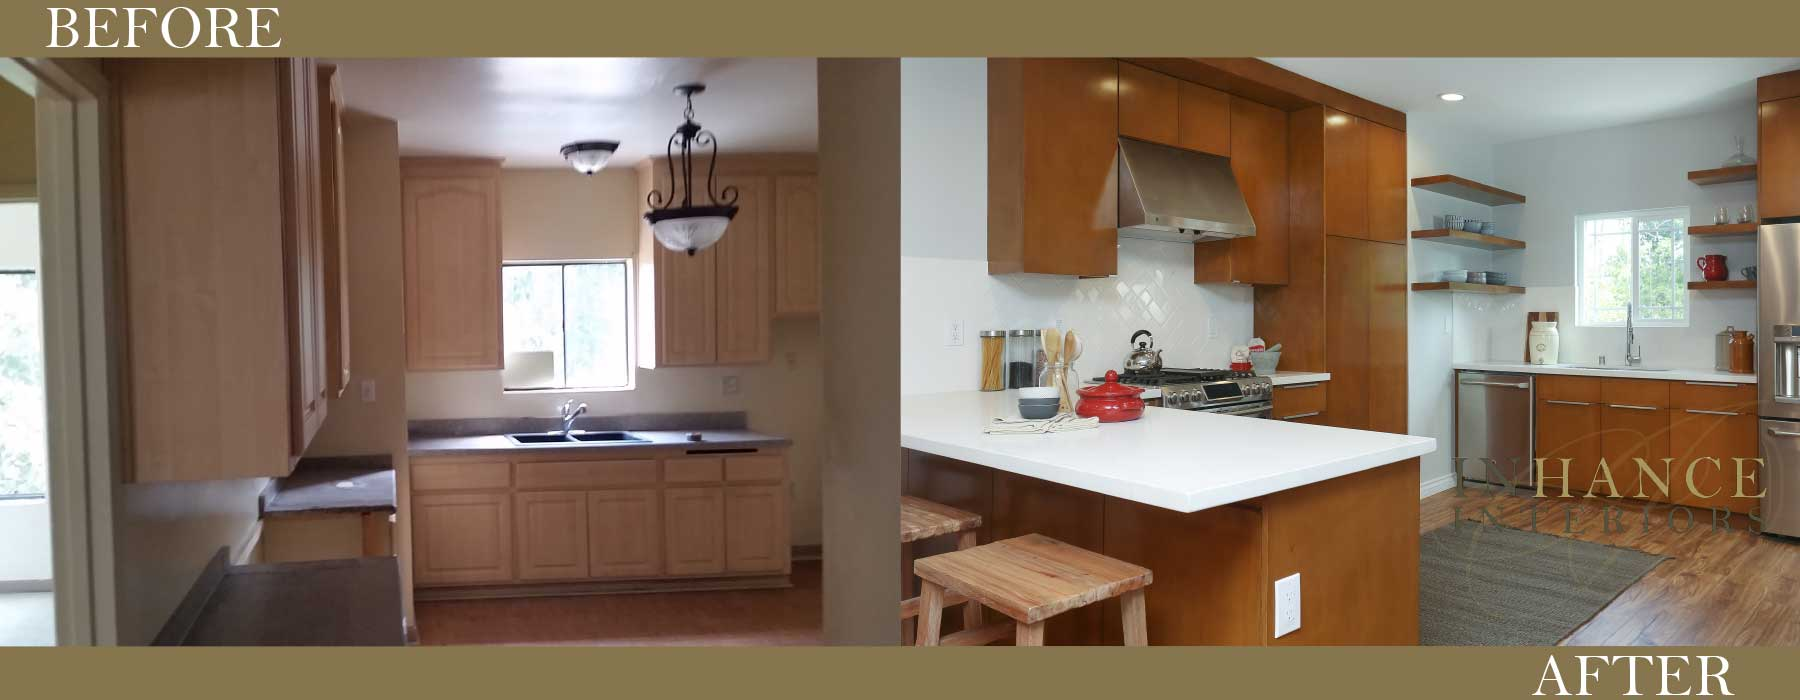 McCollum_BeforeAfter_Kitchen.jpg